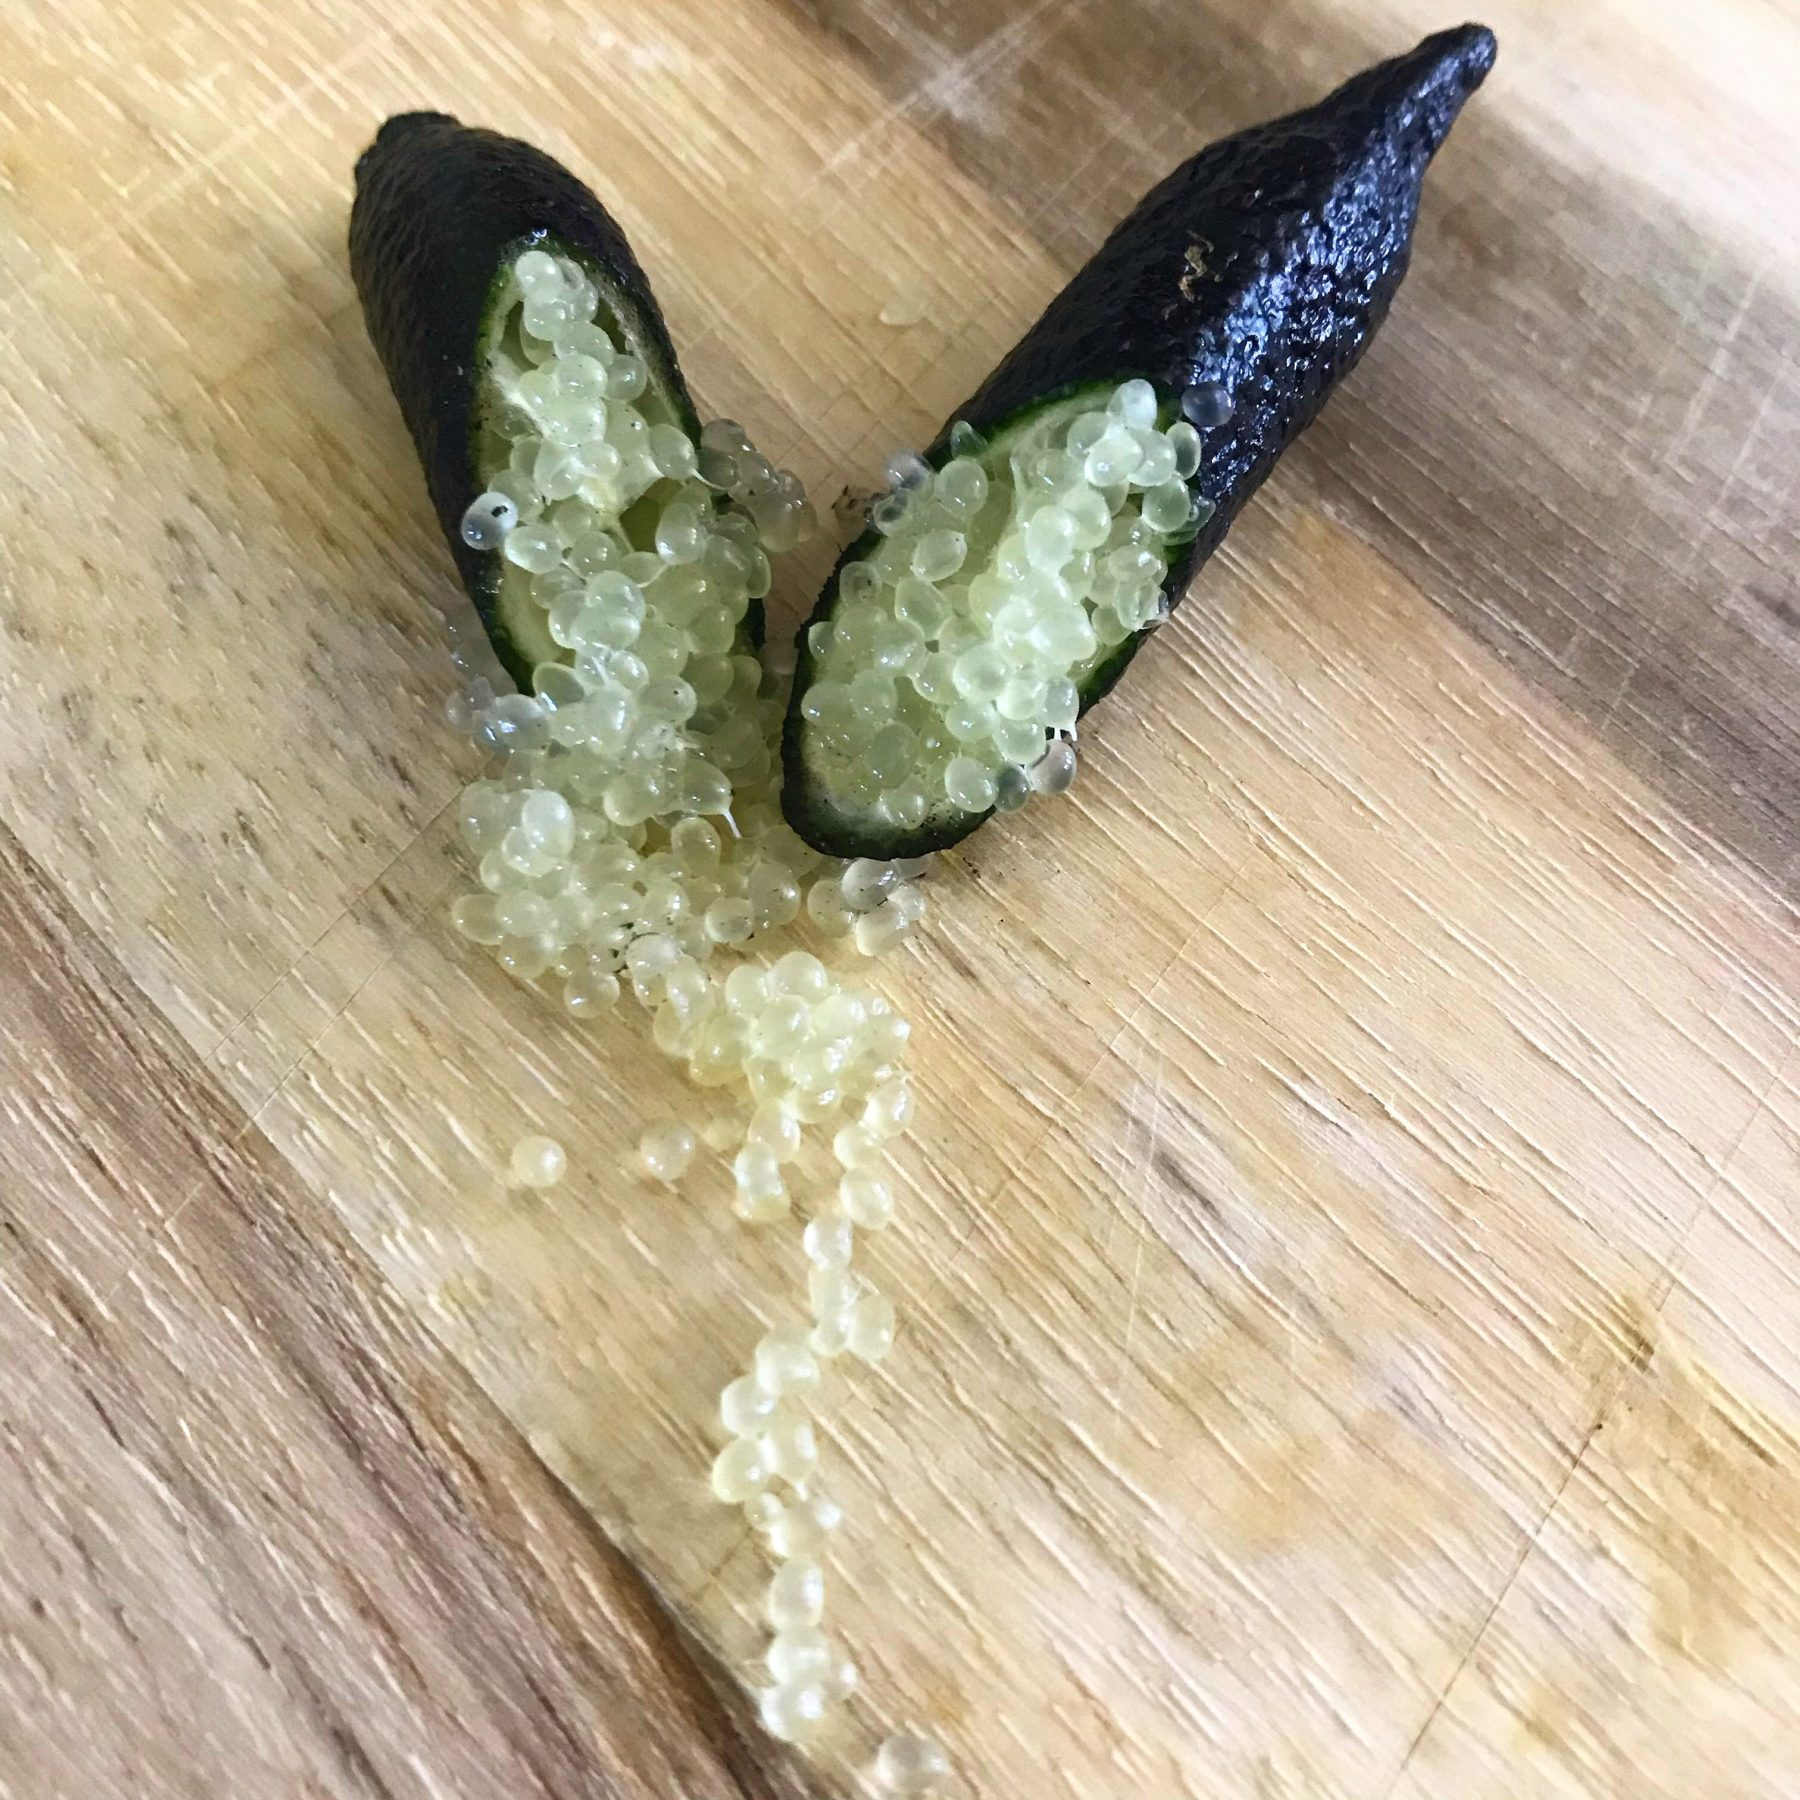 Australian Finger Lime